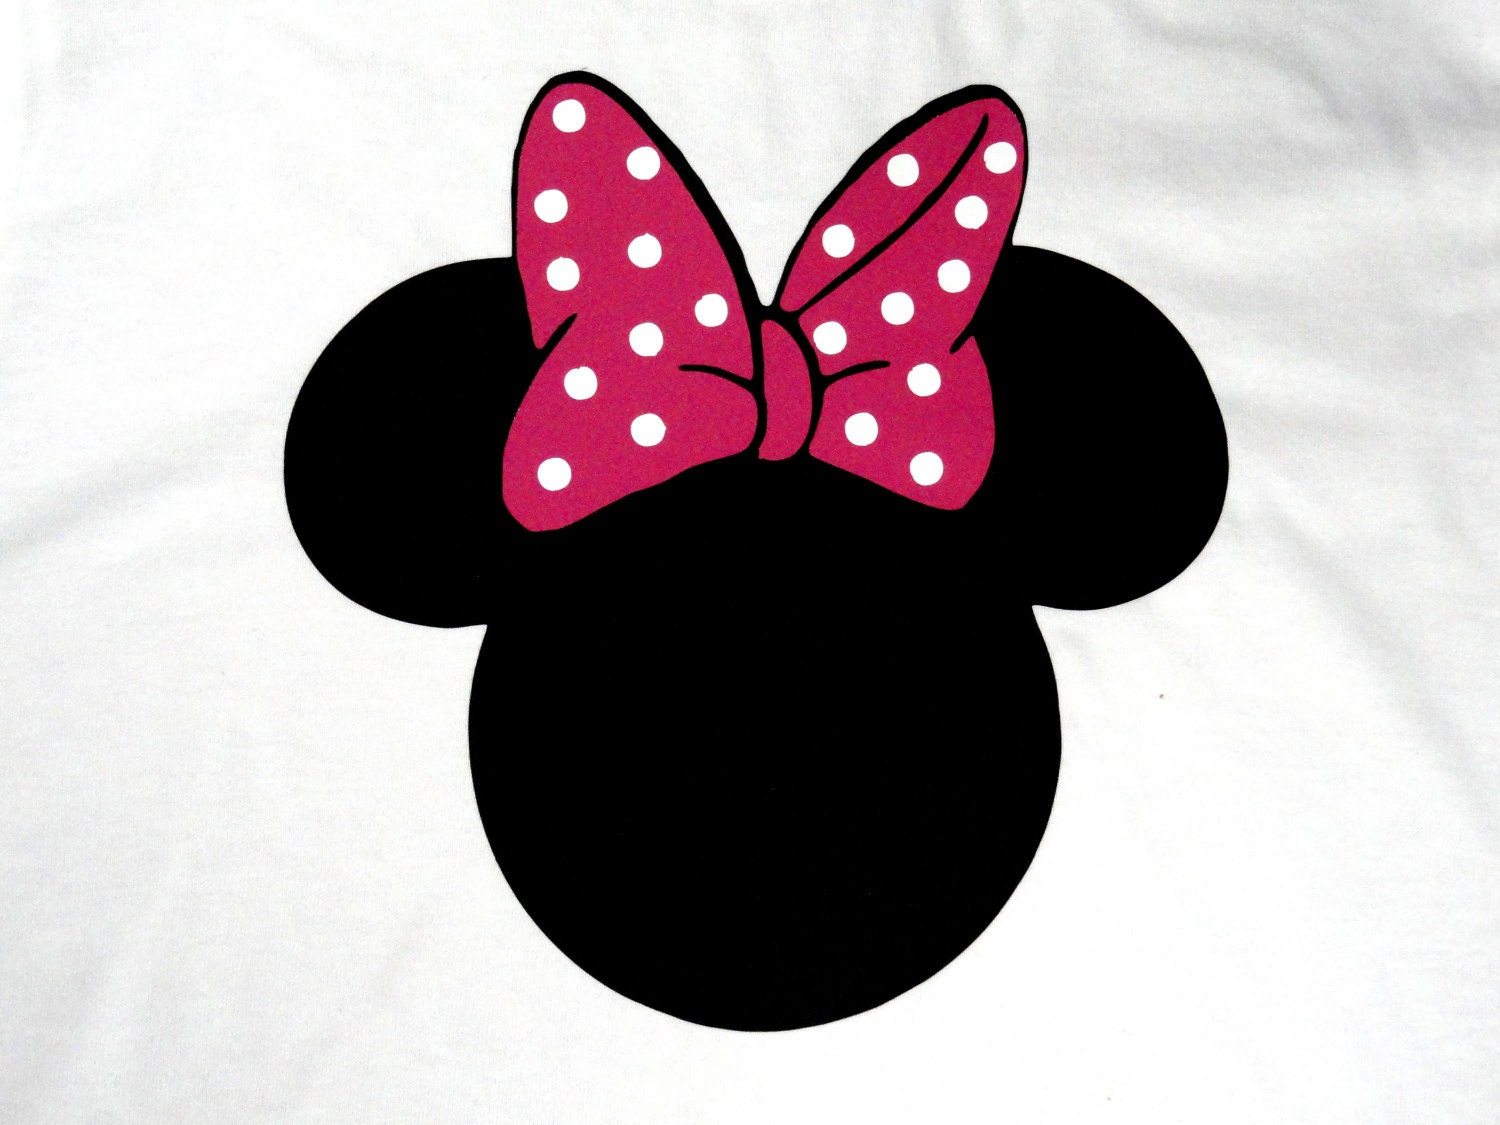 minnie mouse ears logo images. Black Bedroom Furniture Sets. Home Design Ideas